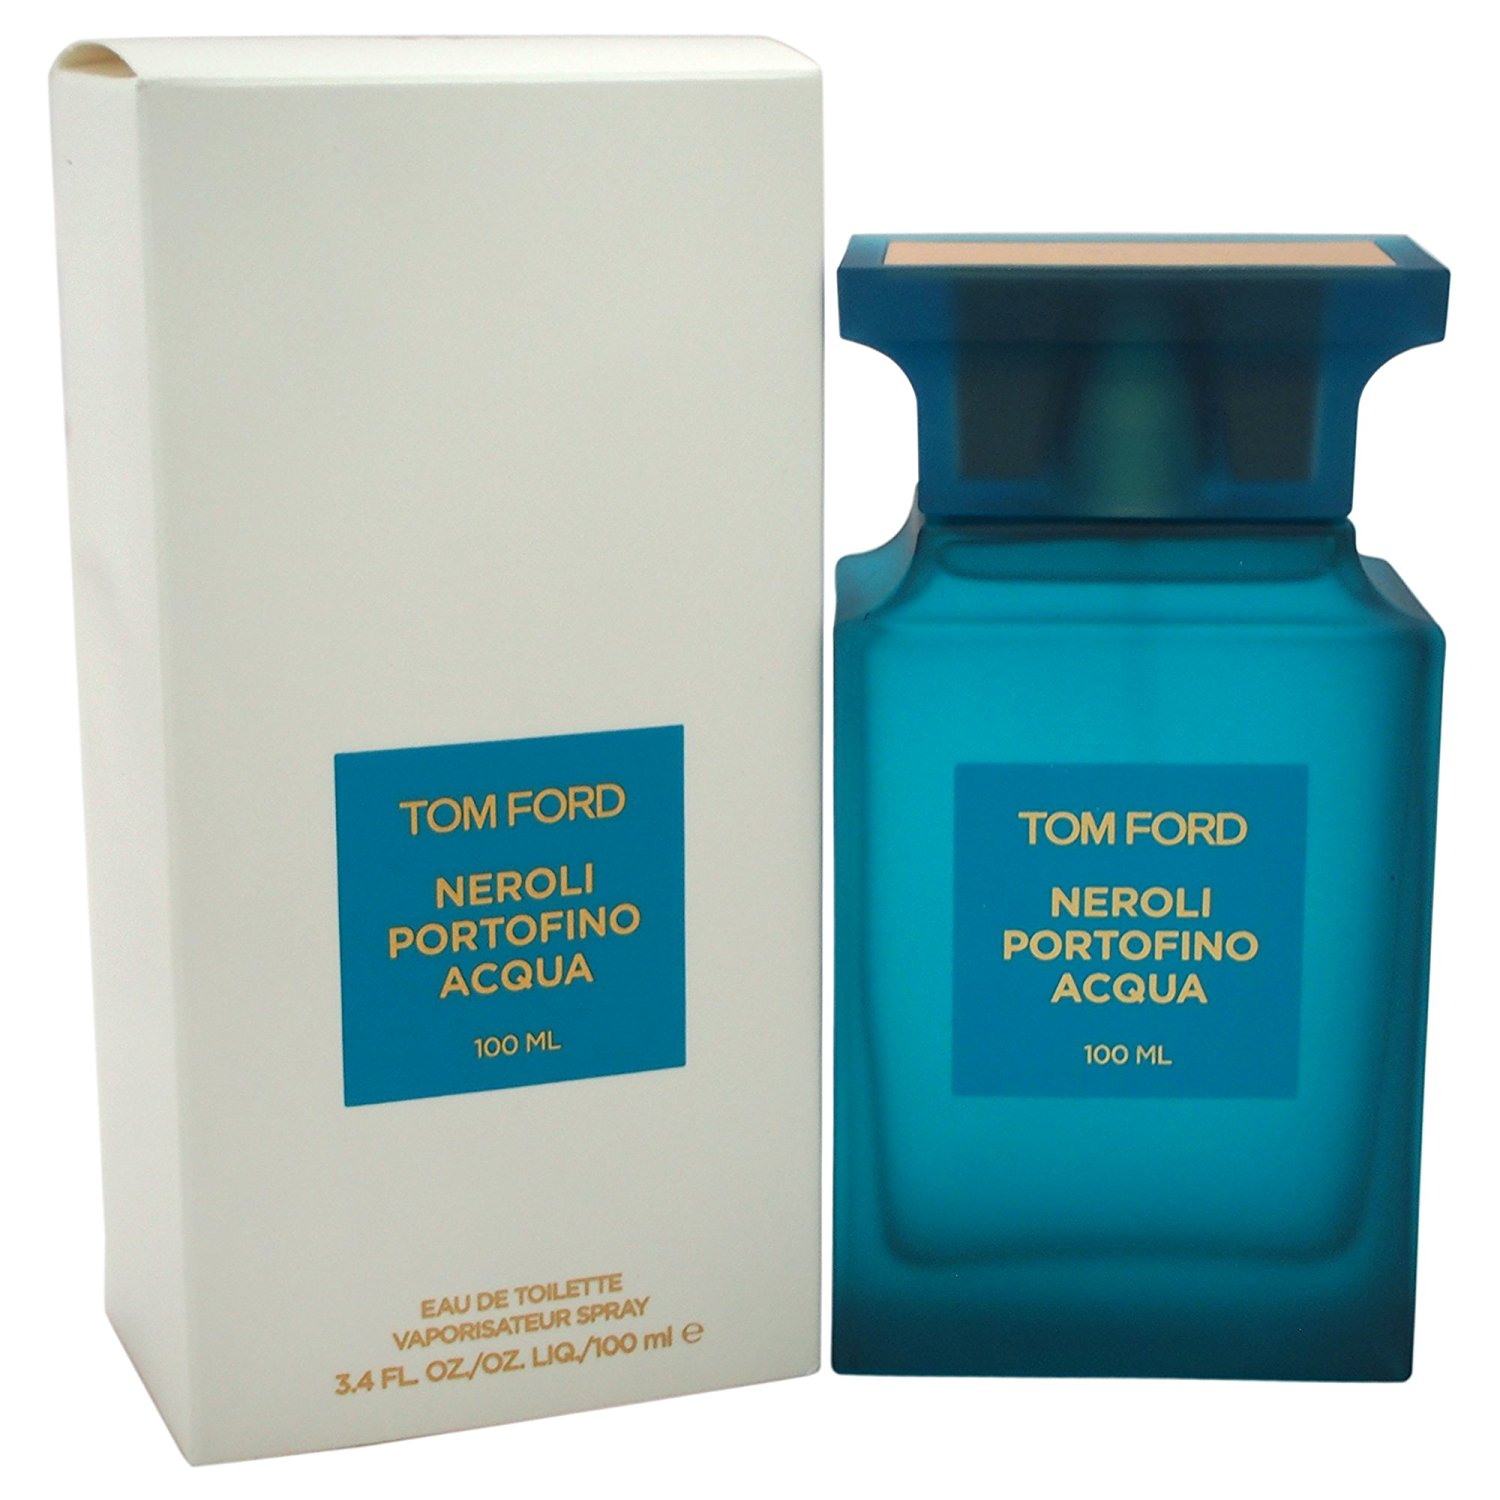 Tom Ford Private Blend Mandarino di Amalfi Acqua Eau de Toilette 100ml